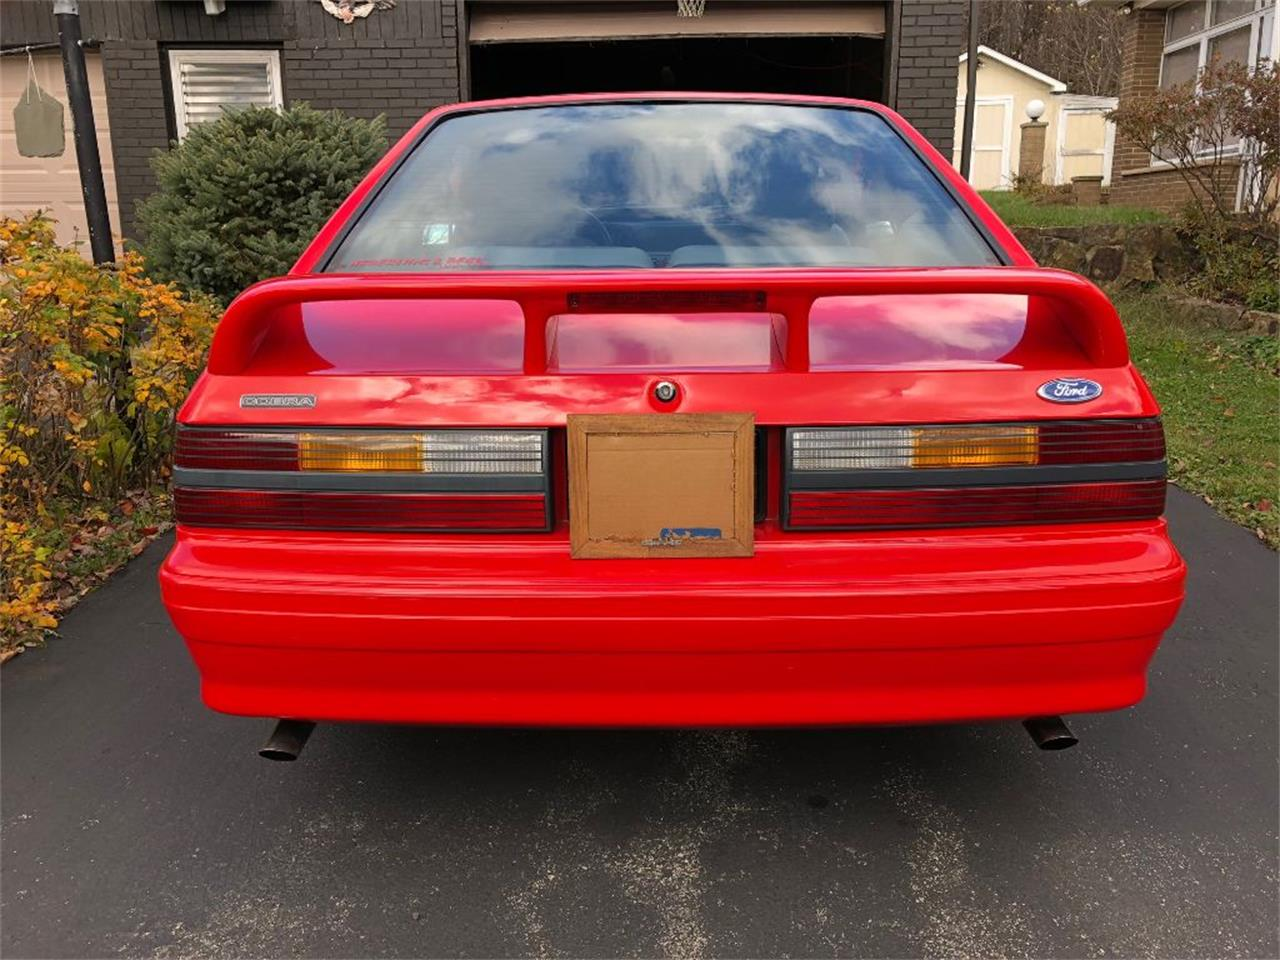 Large Picture of '93 Ford Mustang Cobra located in Latrobe Pennsylvania - POA0